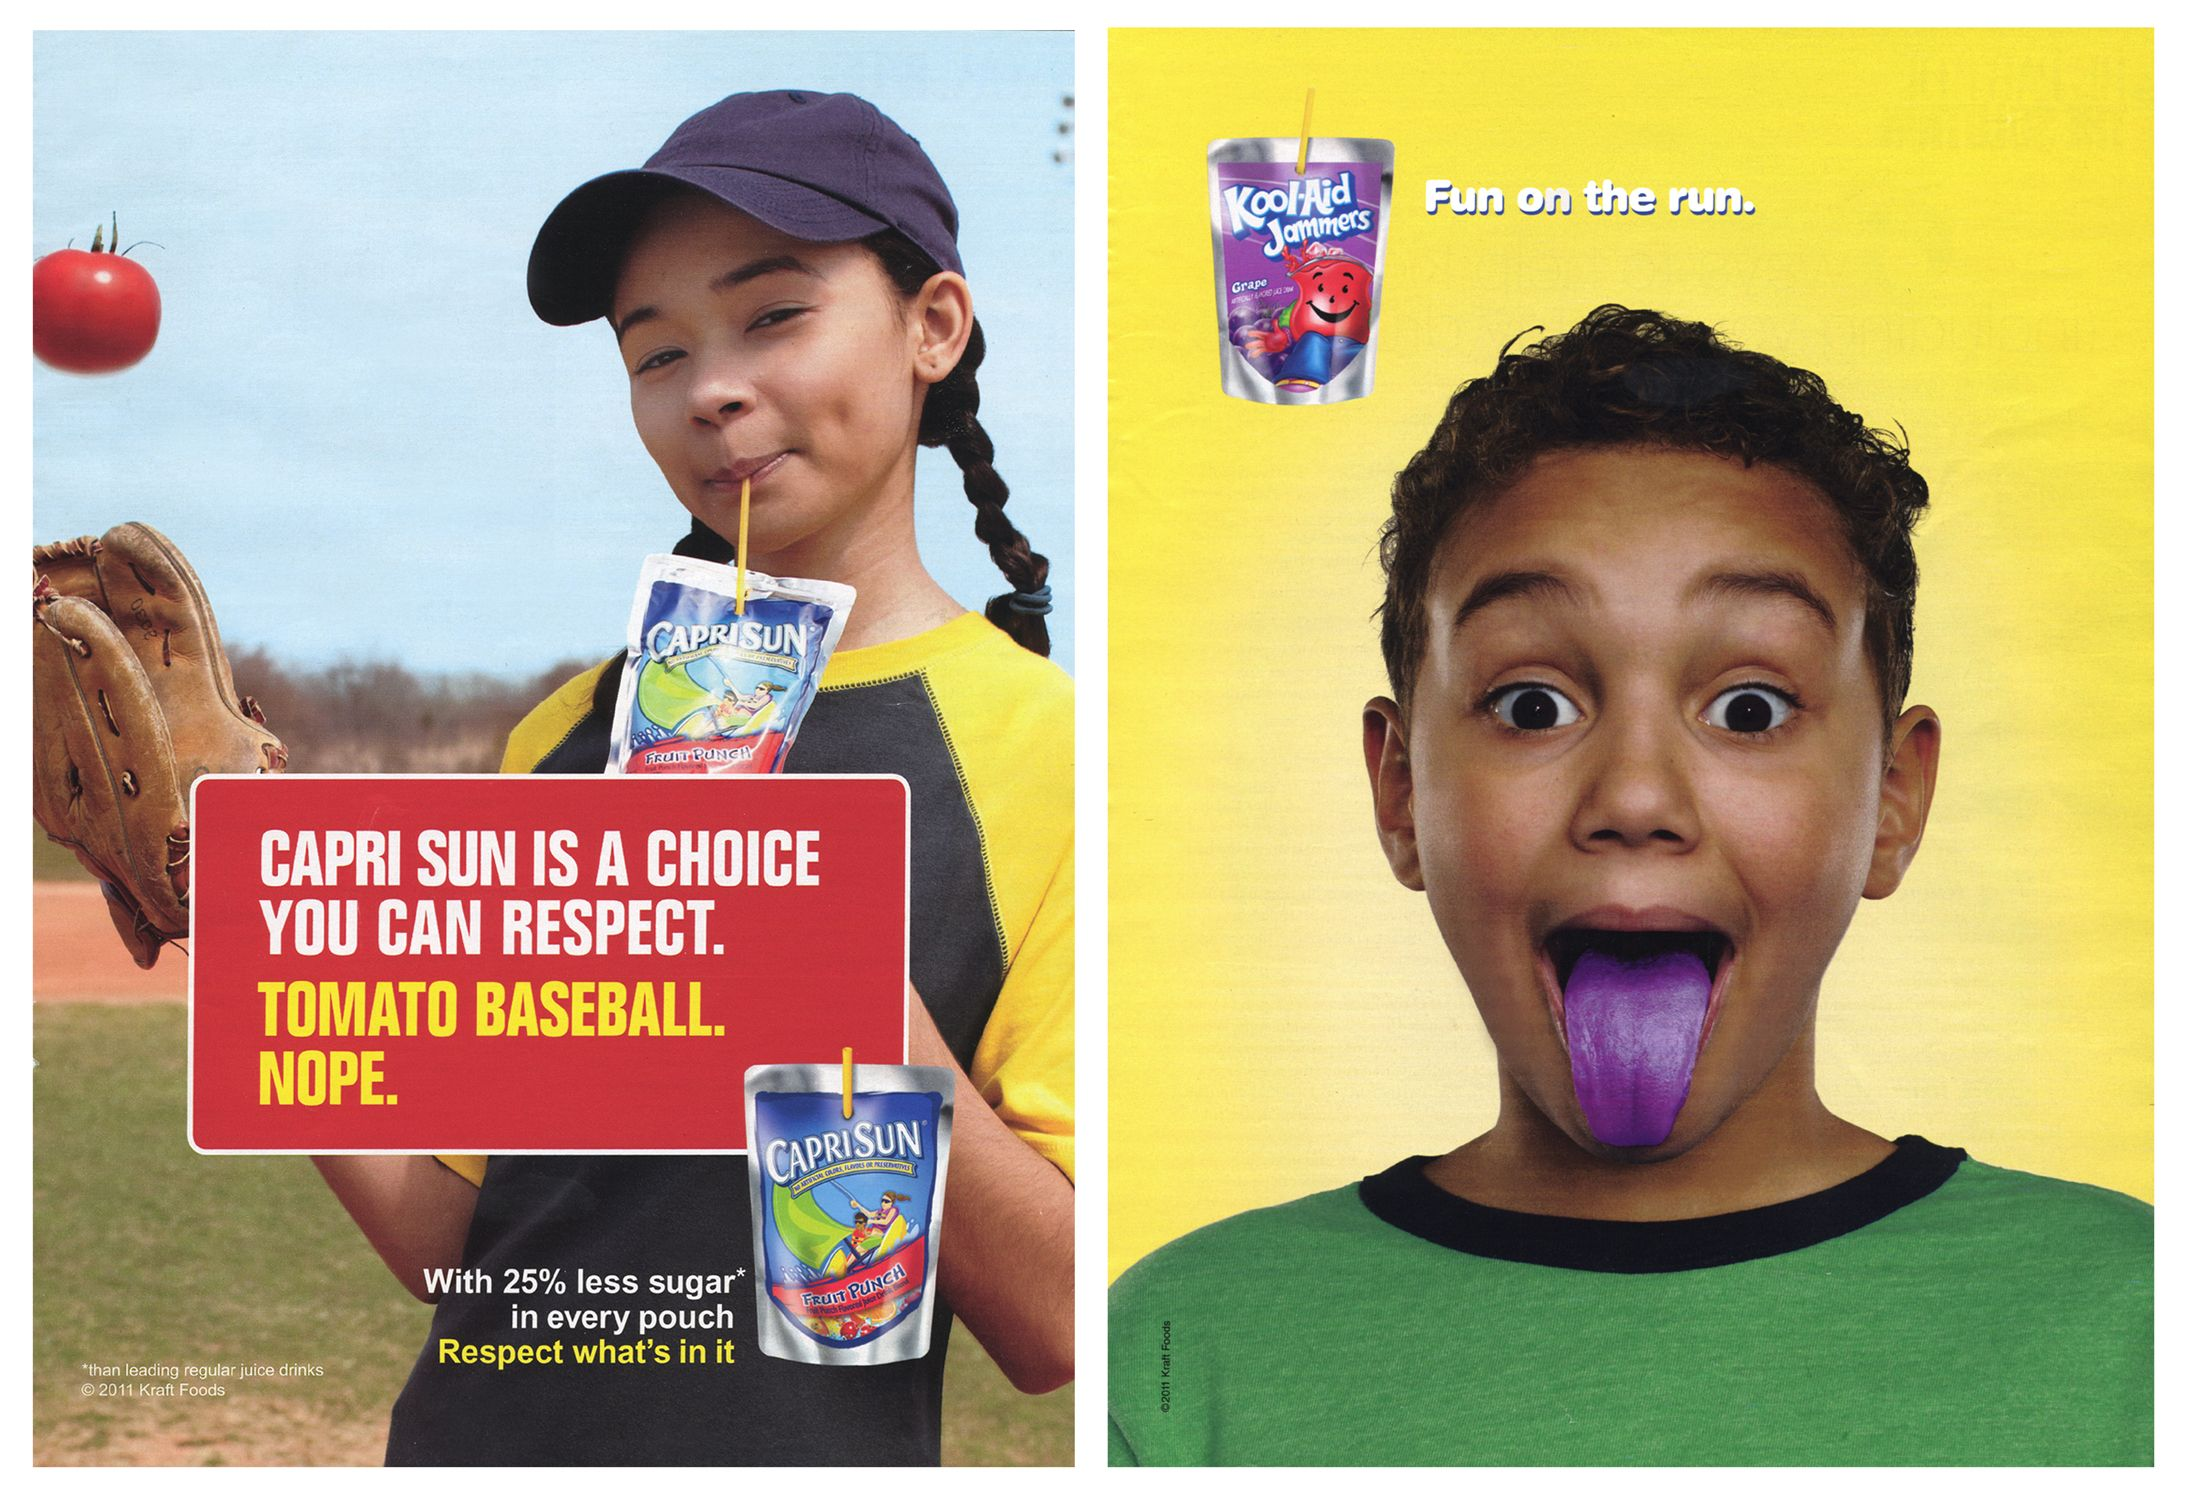 persuasive advertisements for kids examples - Google ...